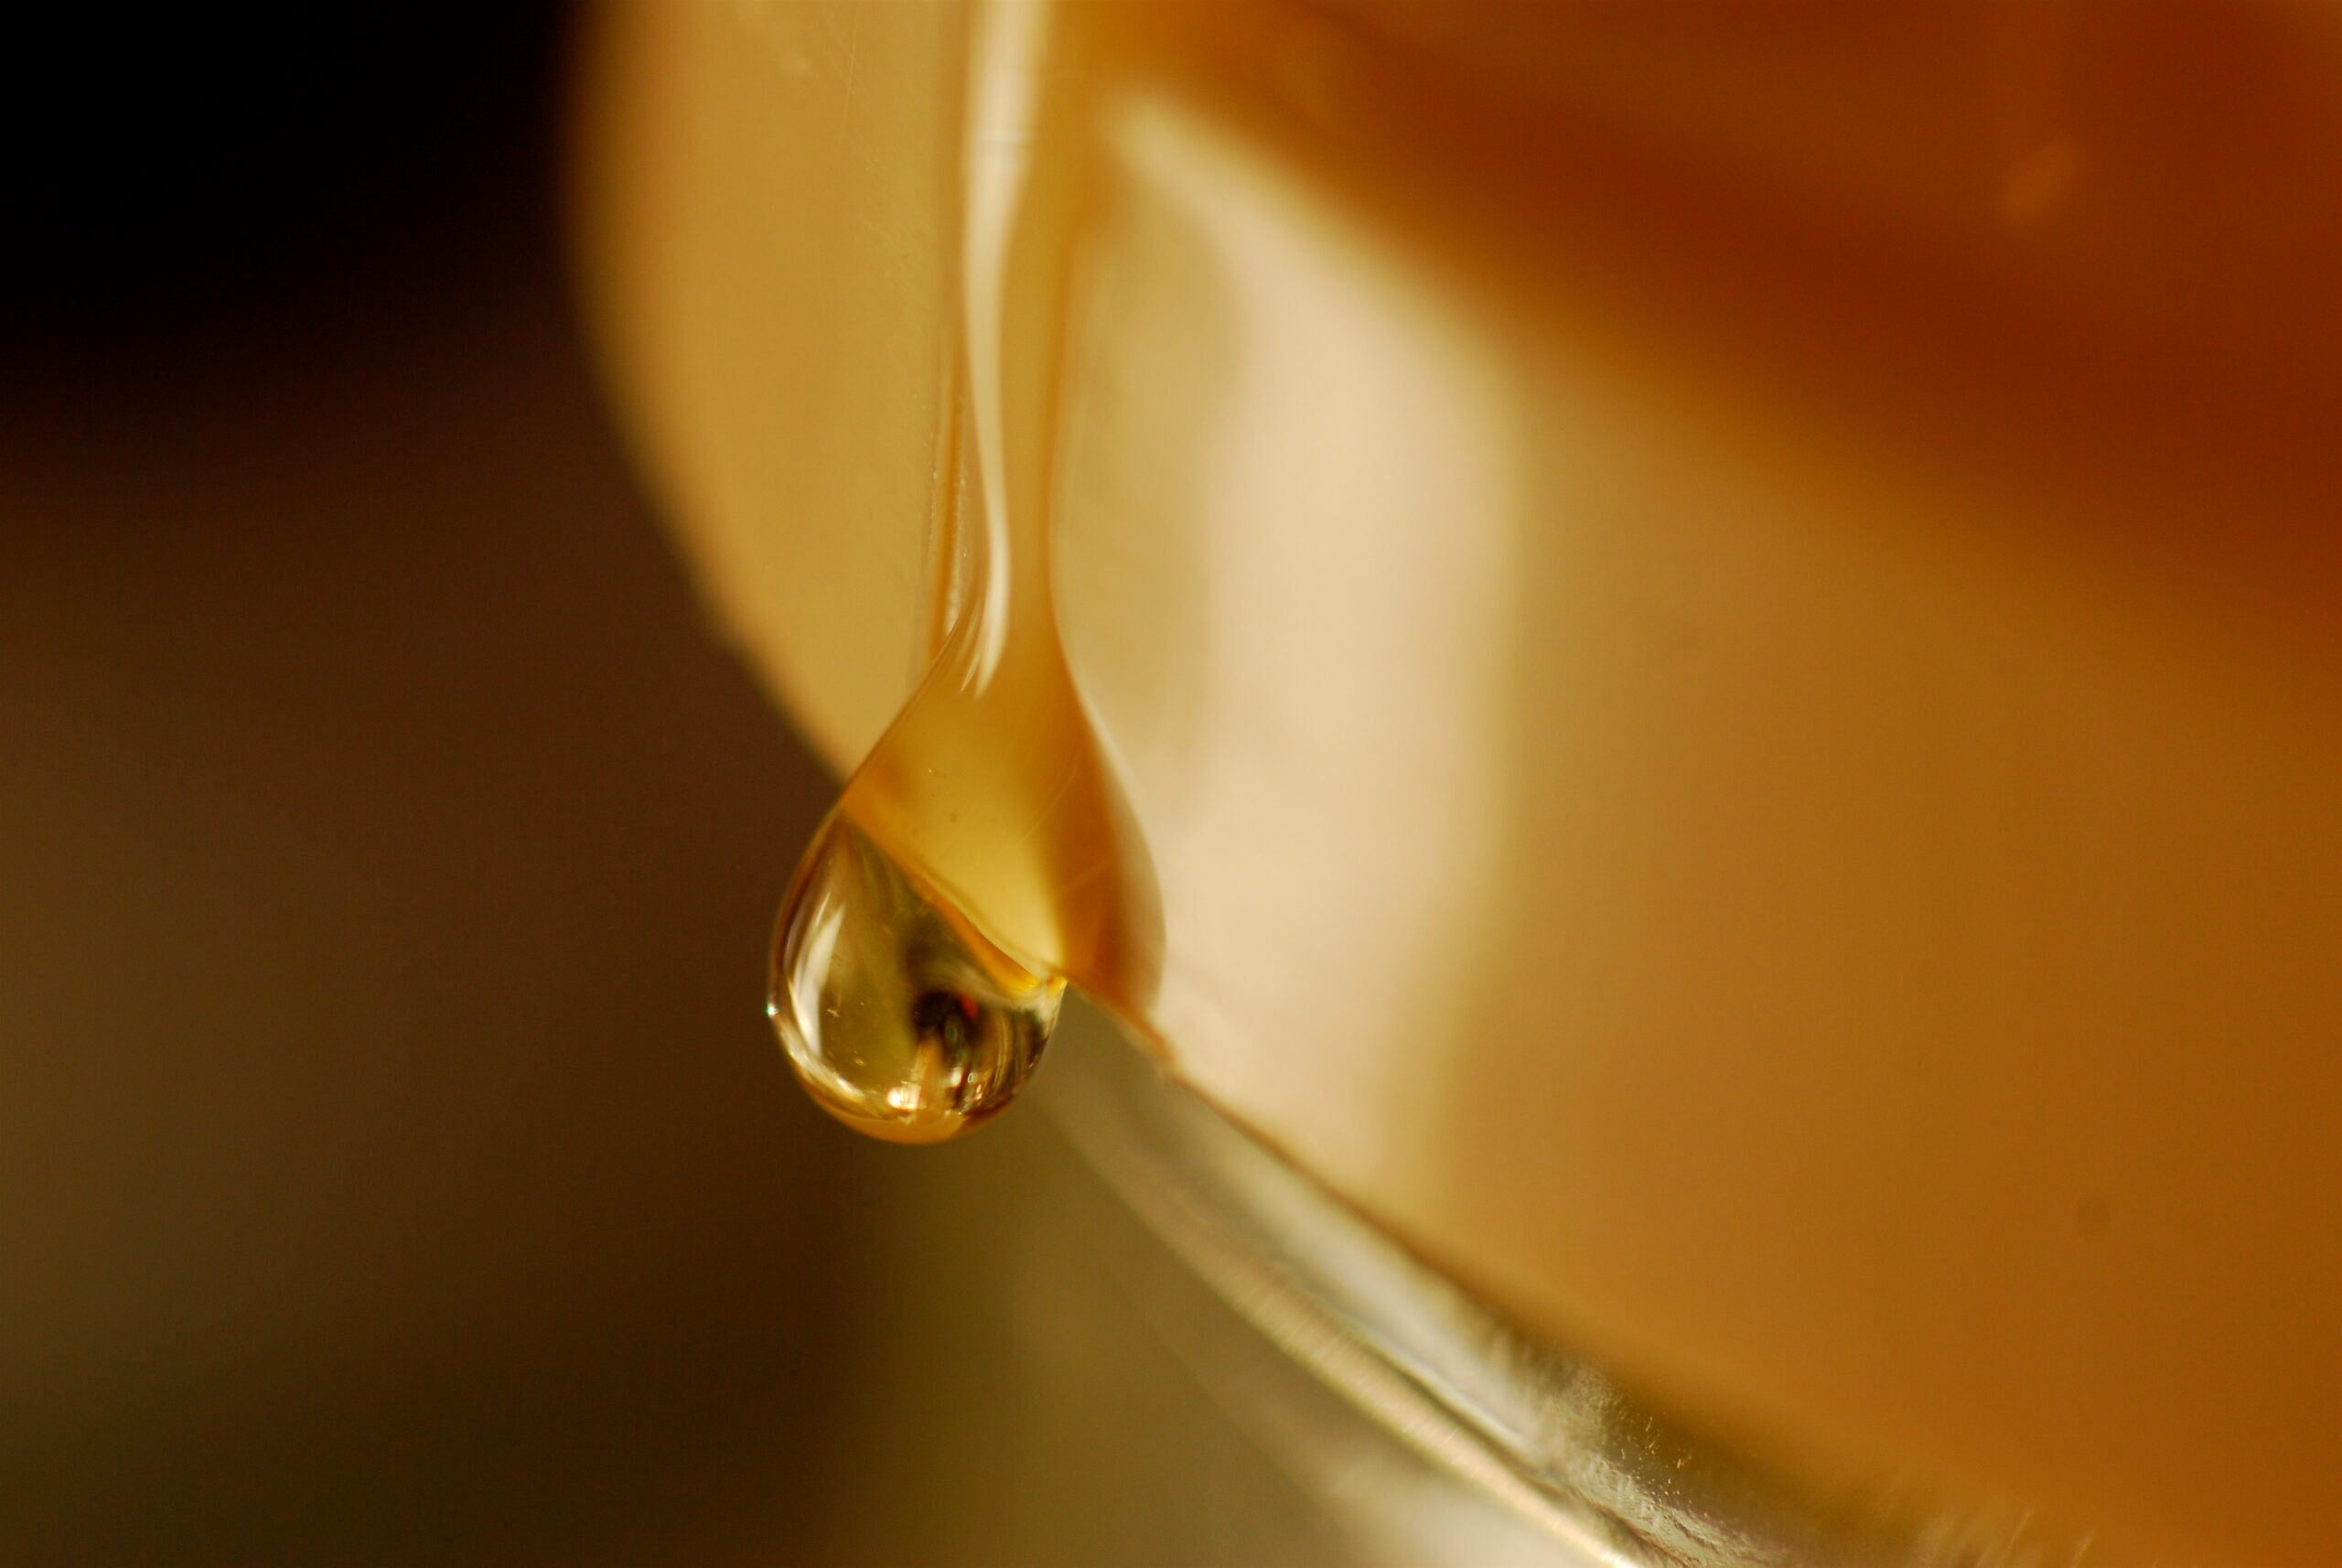 Physicists Figure Out Why Honey Falls In Twists